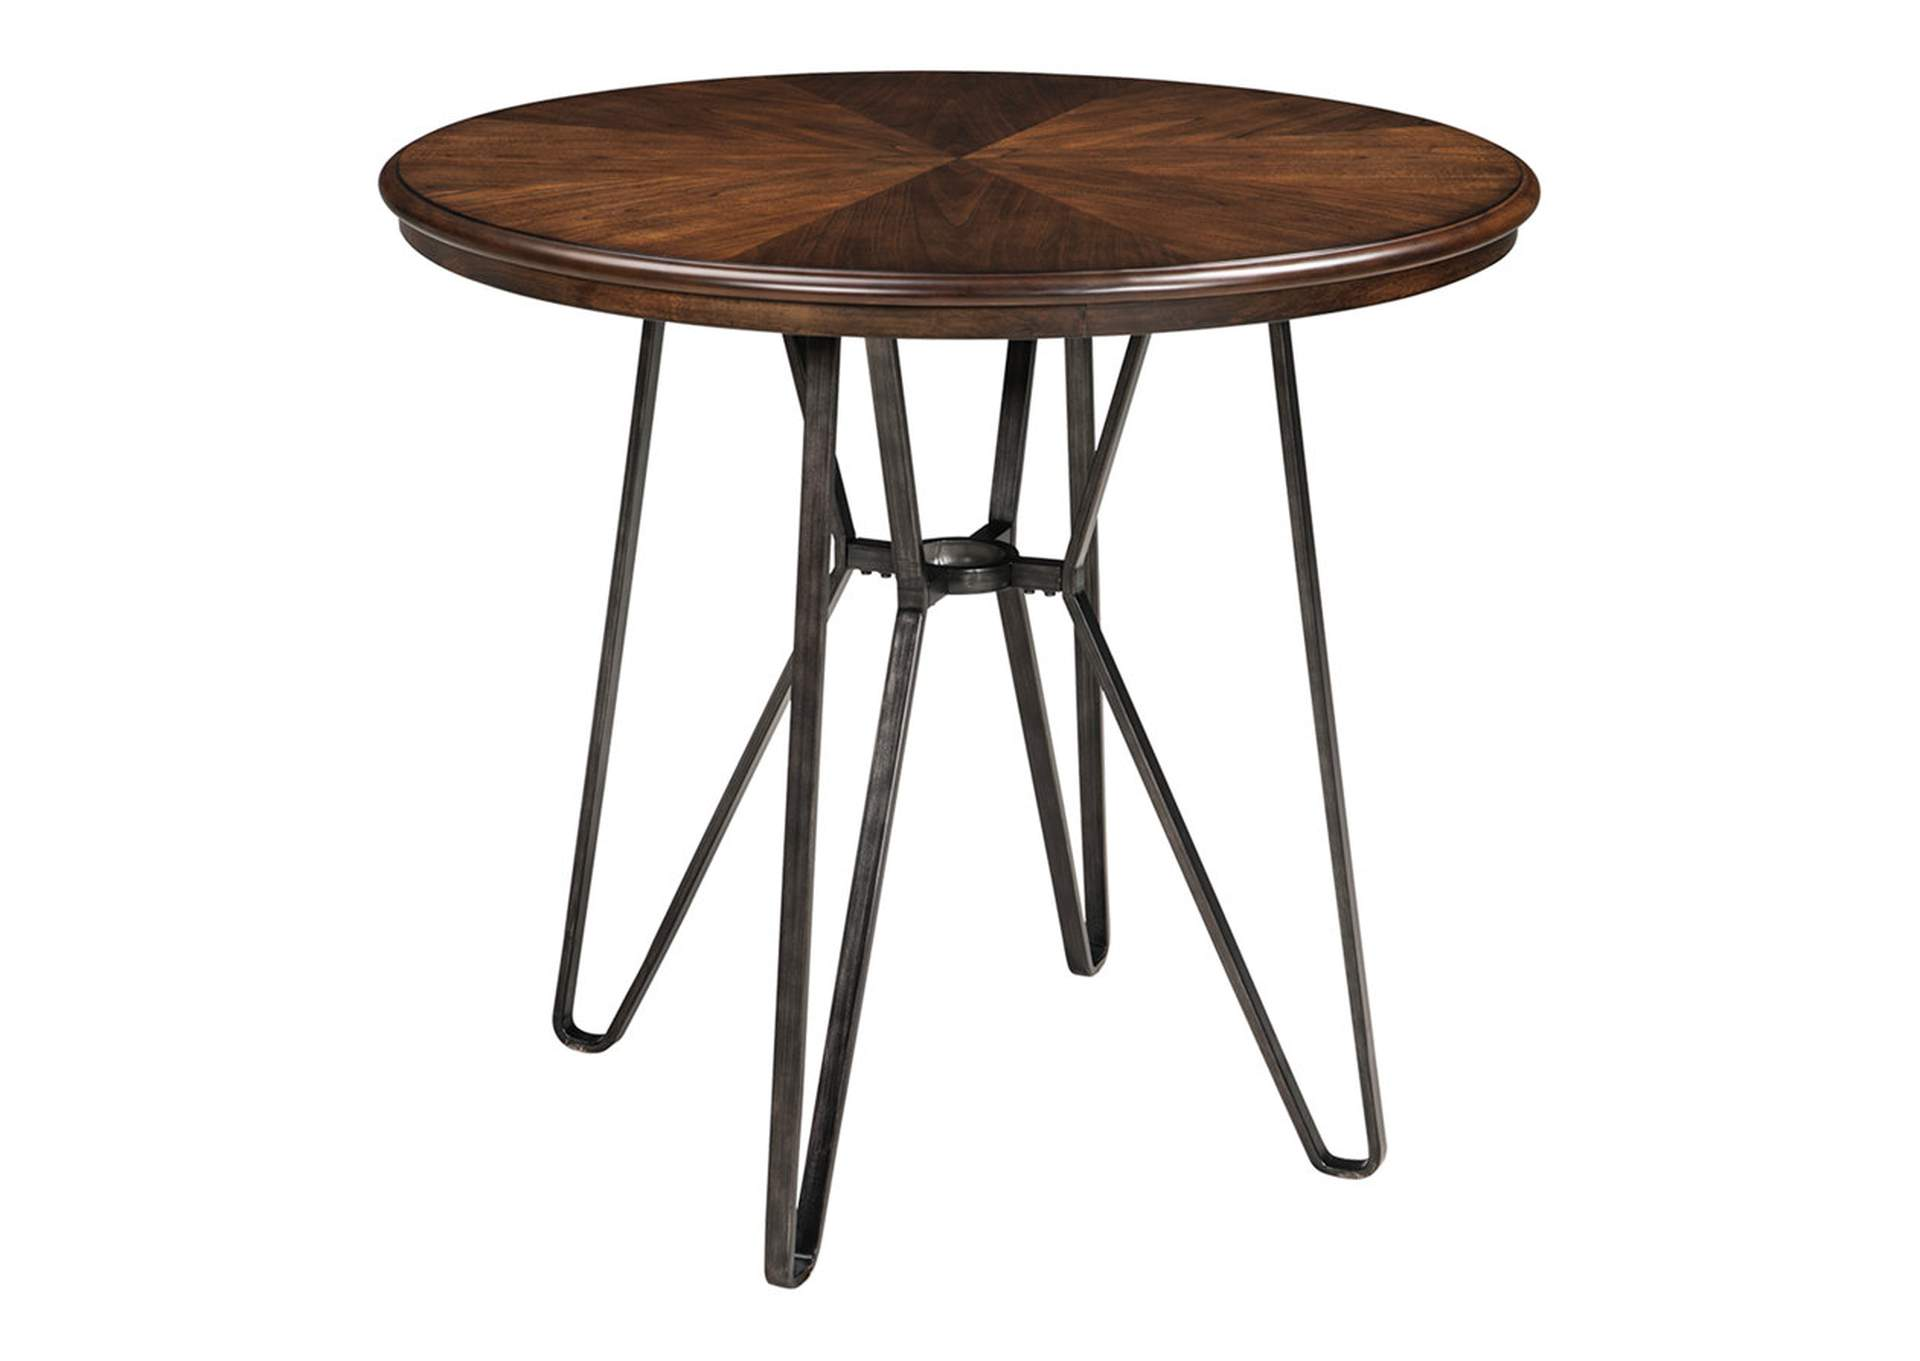 Centiar Two-Tone Brown Round Dining Room Counter Table,Direct To Consumer Express